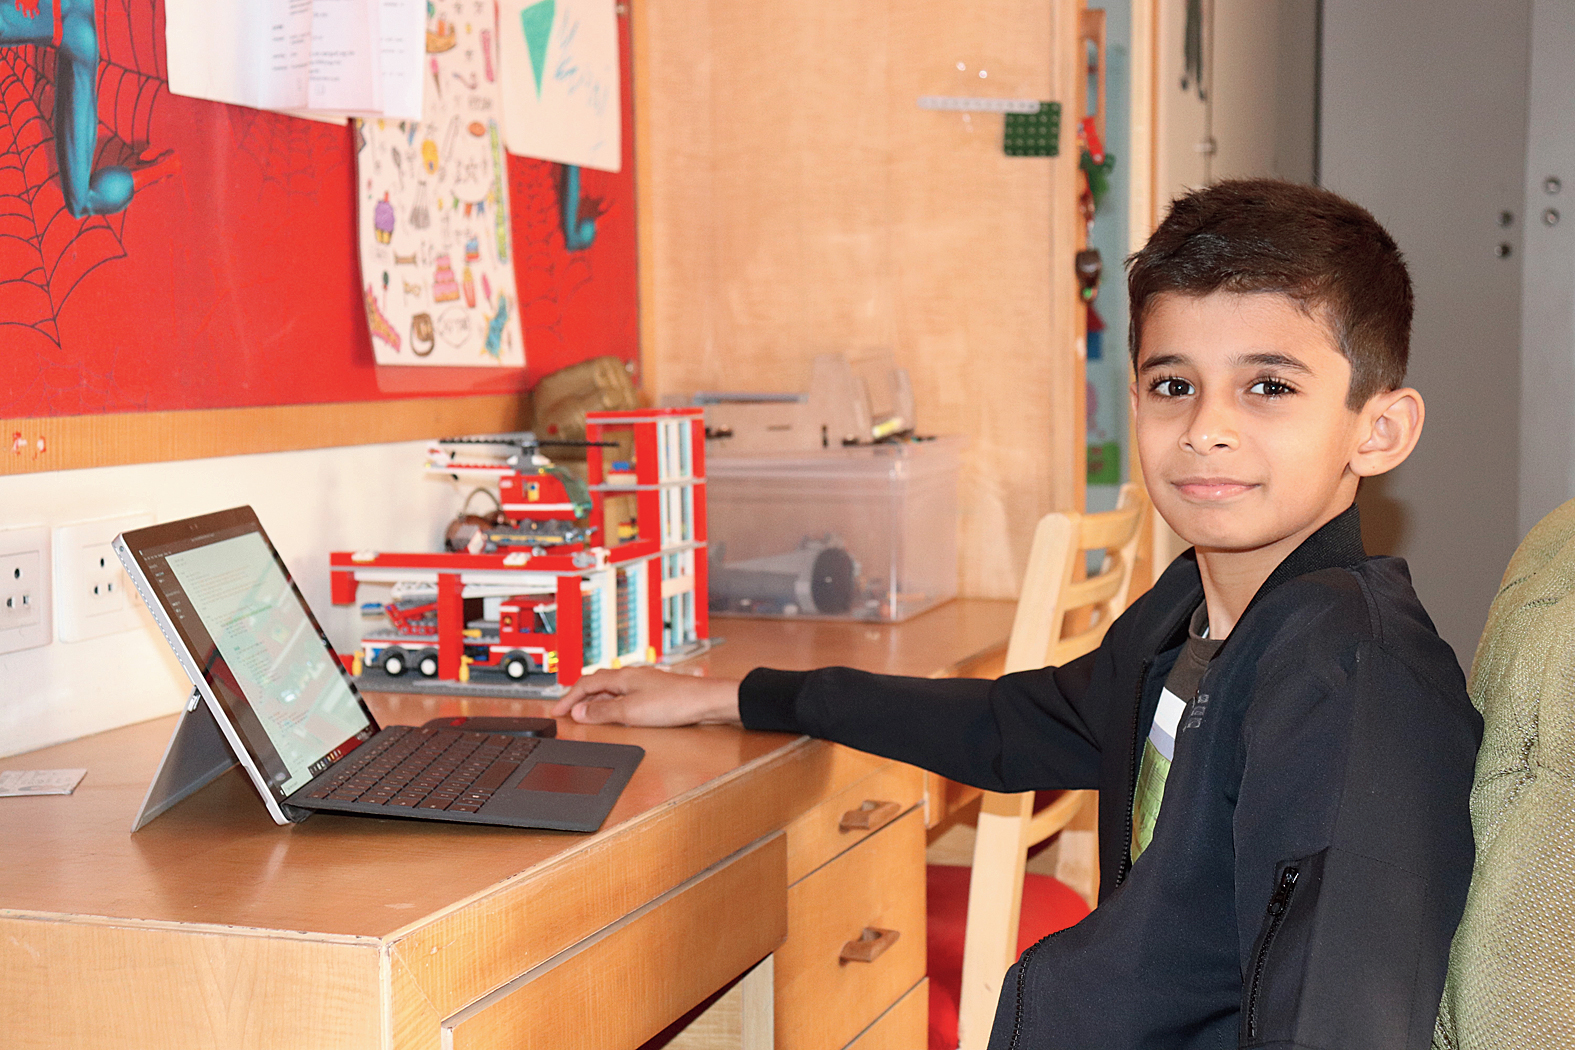 Yuvraj Shah, who improved his coding skills with WhiteHat Jr has come up with the app Medmaze, which helps people to donate their unused but not expired medicines